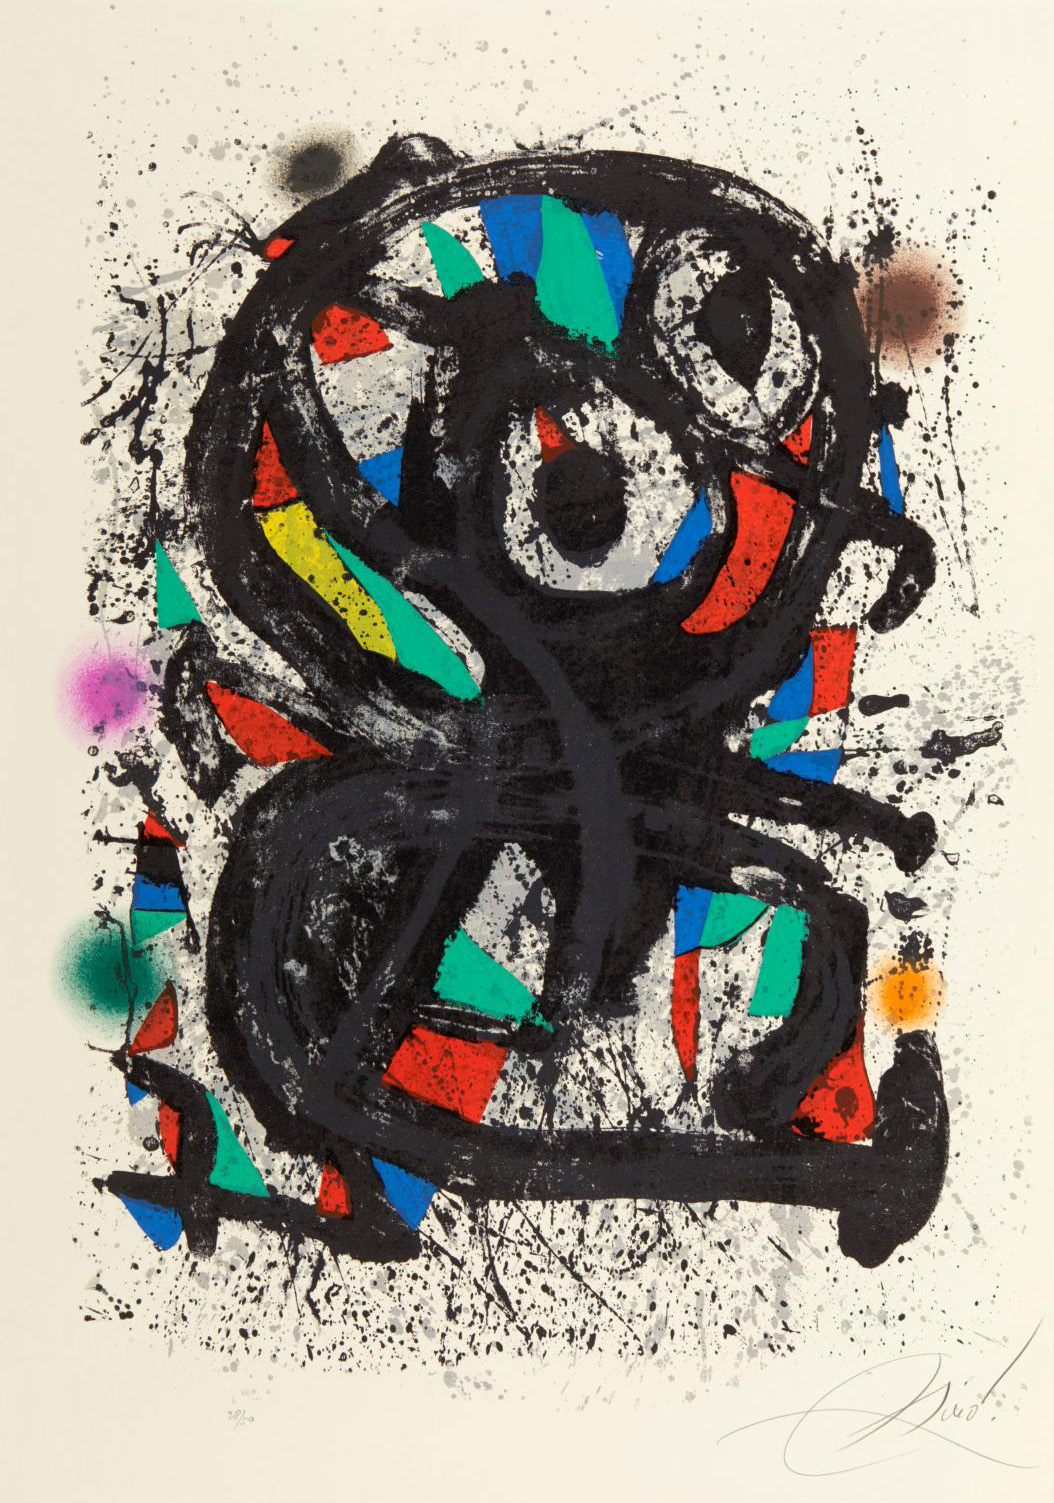 Joan Miró (1893-1983), Grand Palais, color lithograph with splatters, 1974, proof printed in 50 numbered copies, signed in pencil on the f